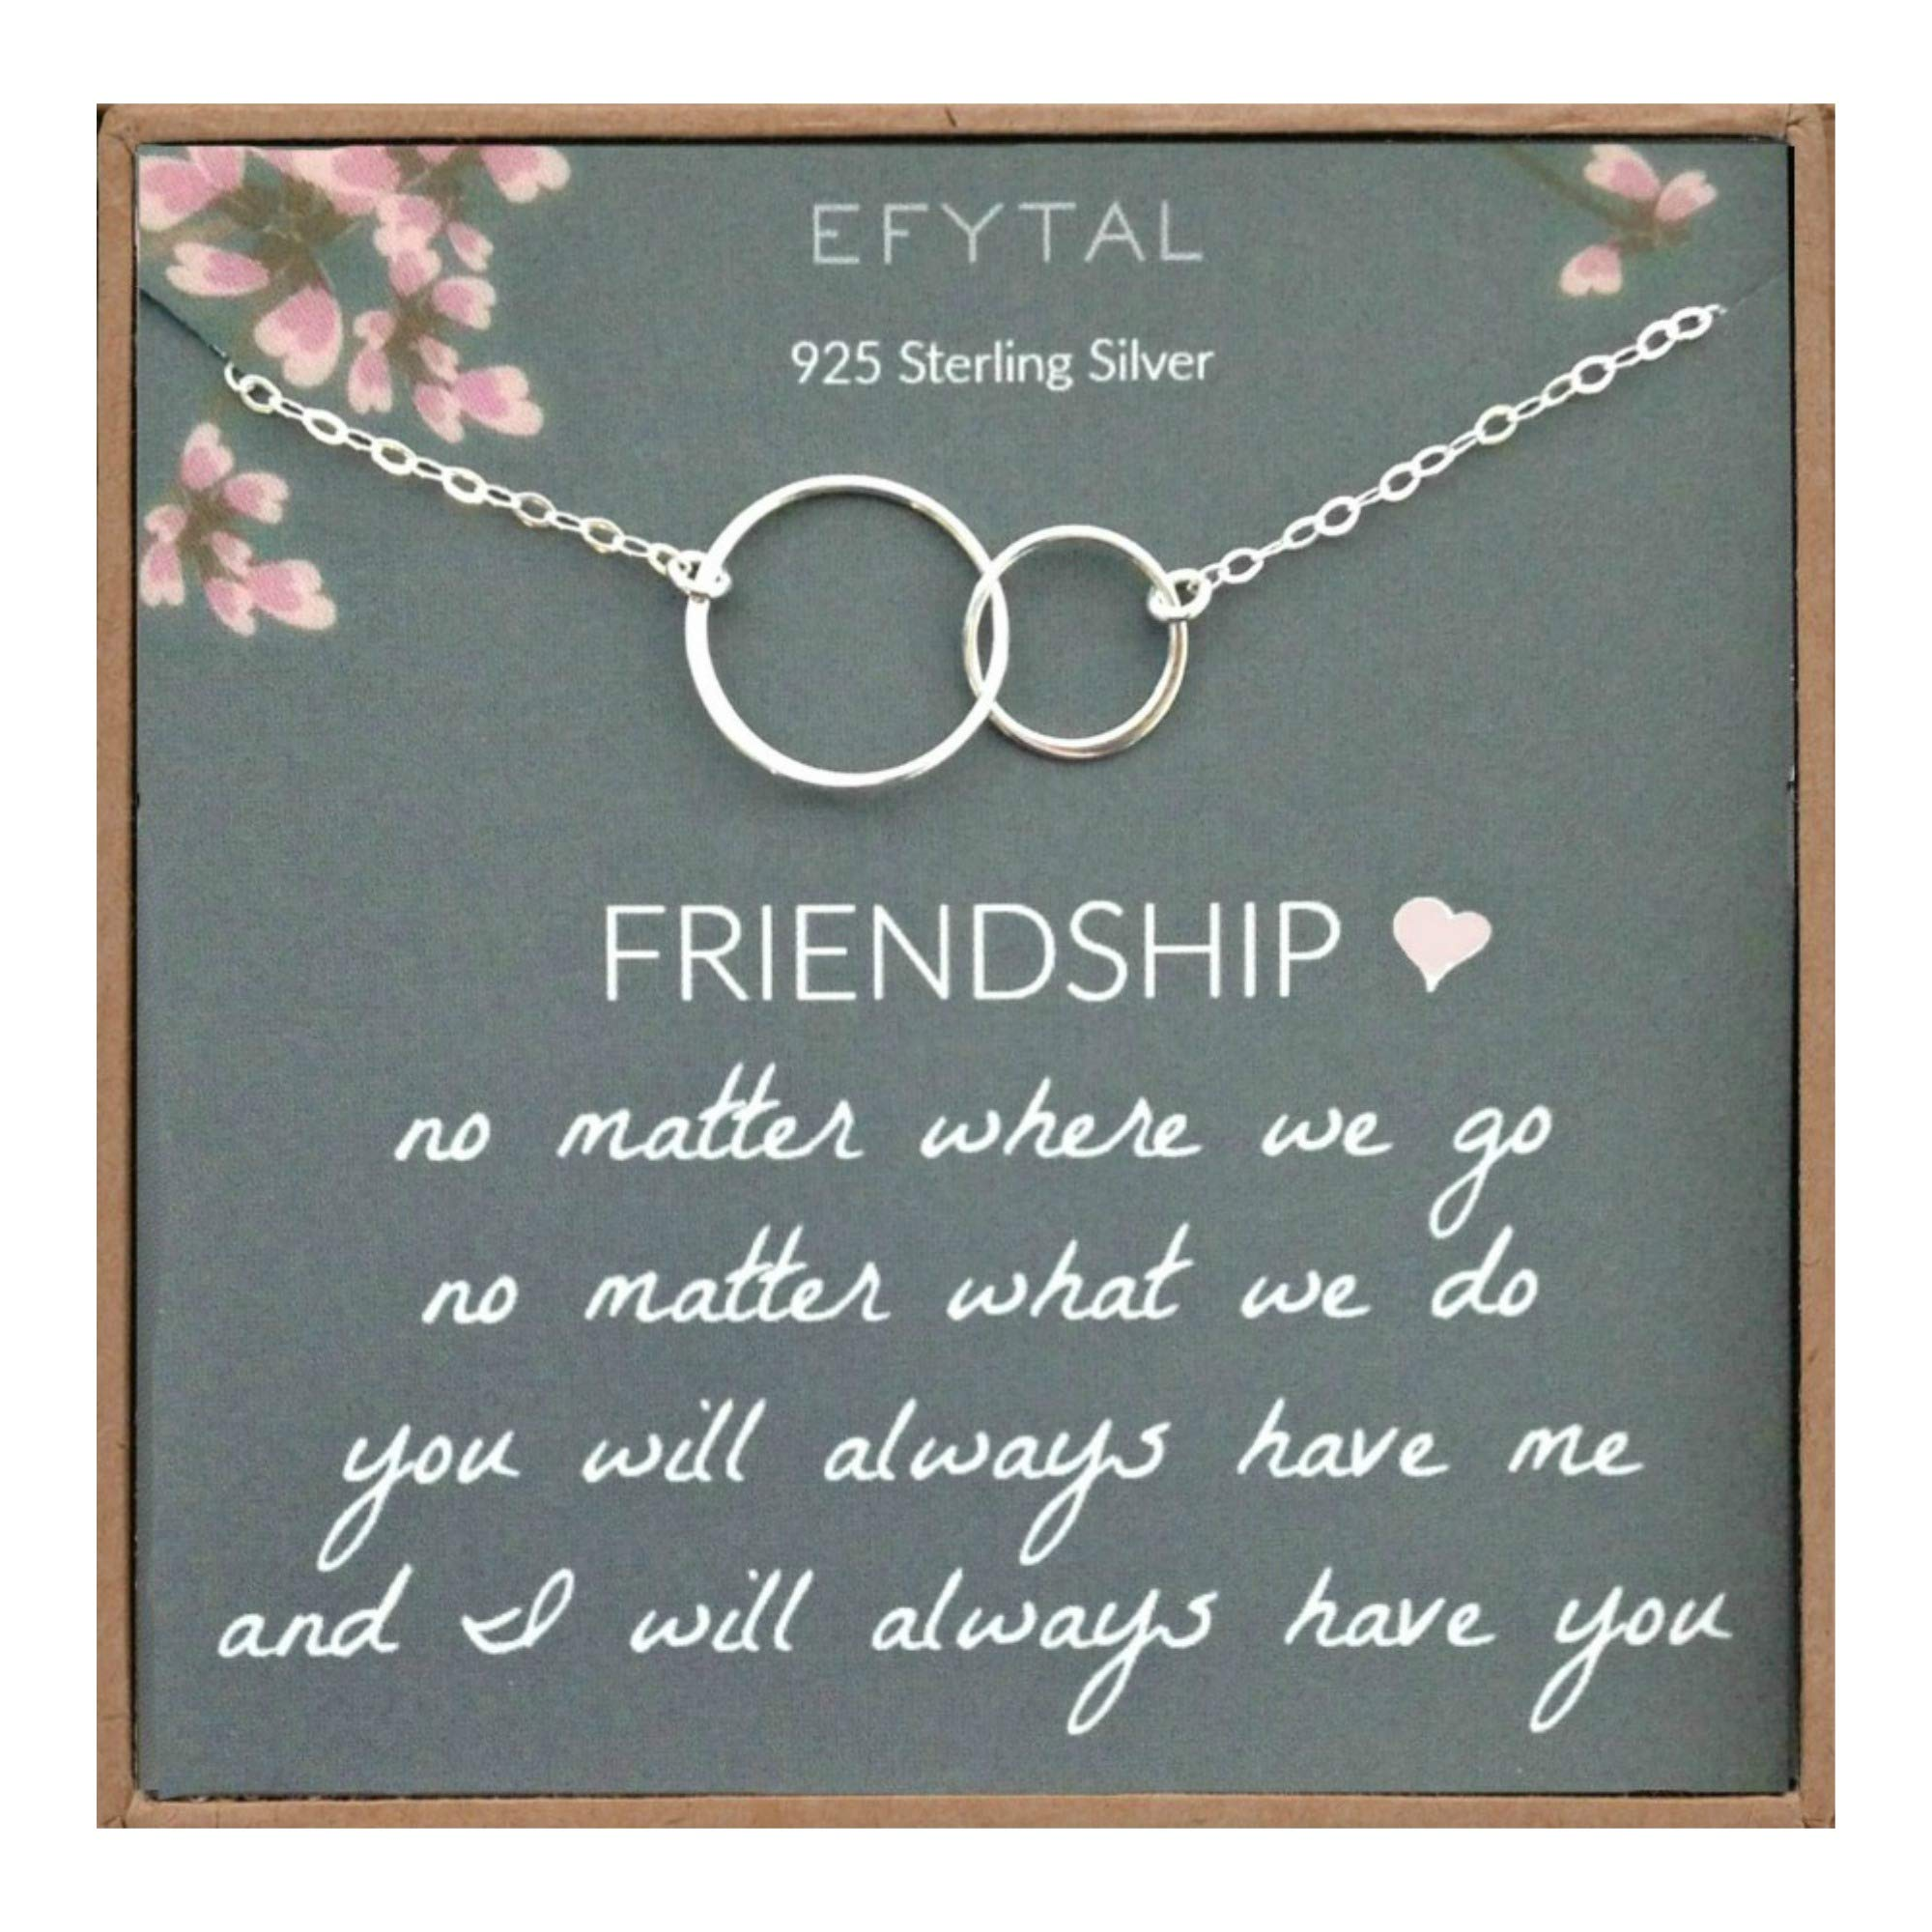 EFYTAL Best Friend Gifts Necklace, Sterling Silver Interlocking Circles, Bridesmaid Gift, Friendship Jewelry by EFYTAL